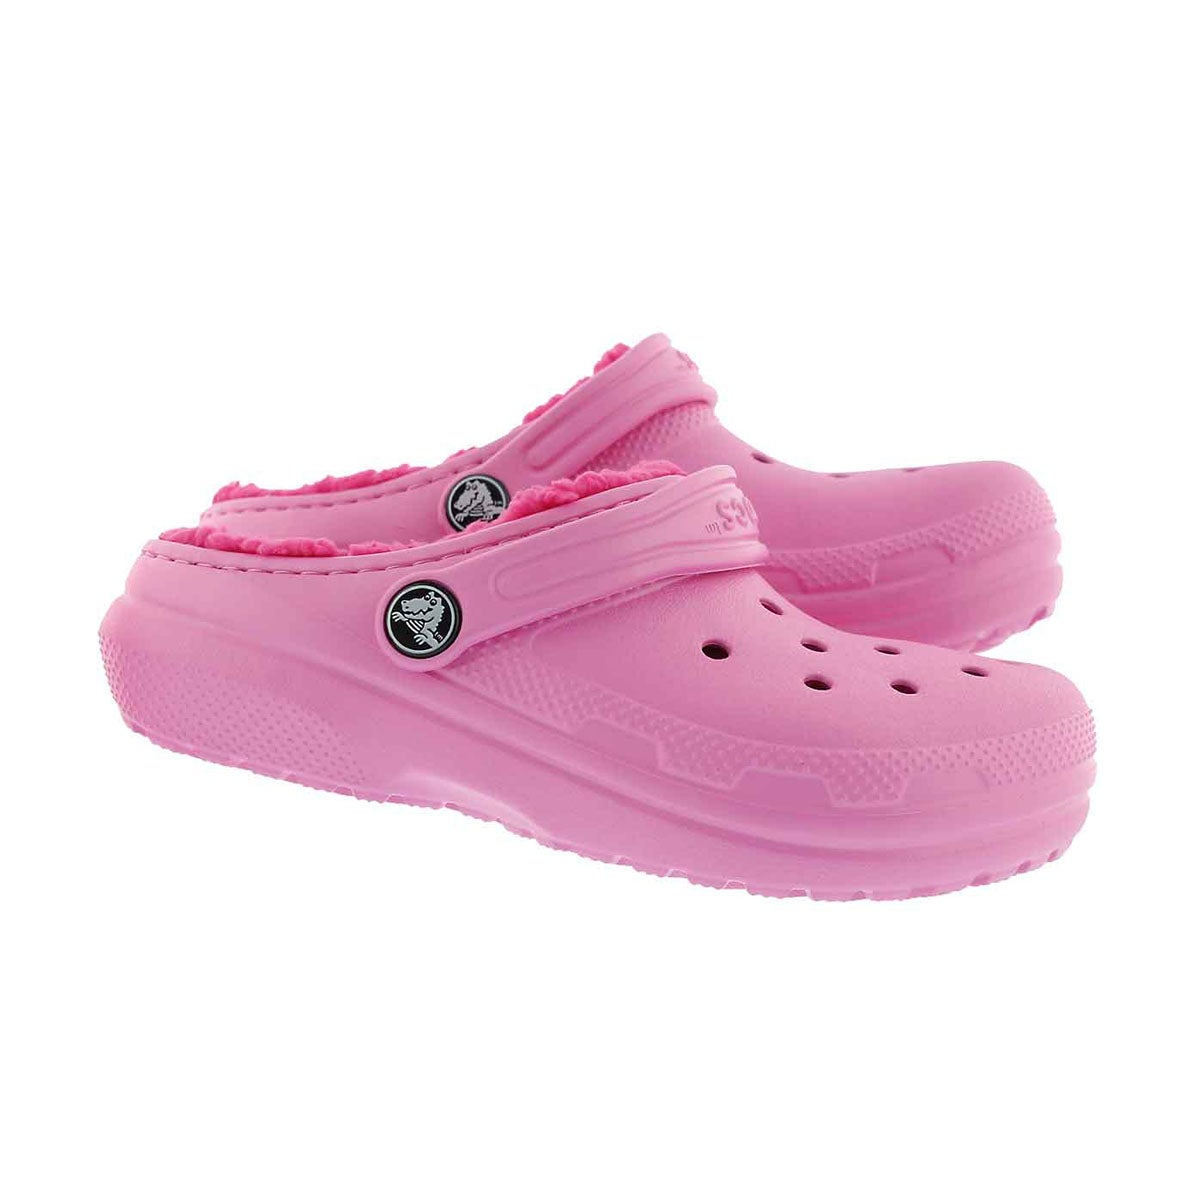 Grls Classic Lined pink comfort clog